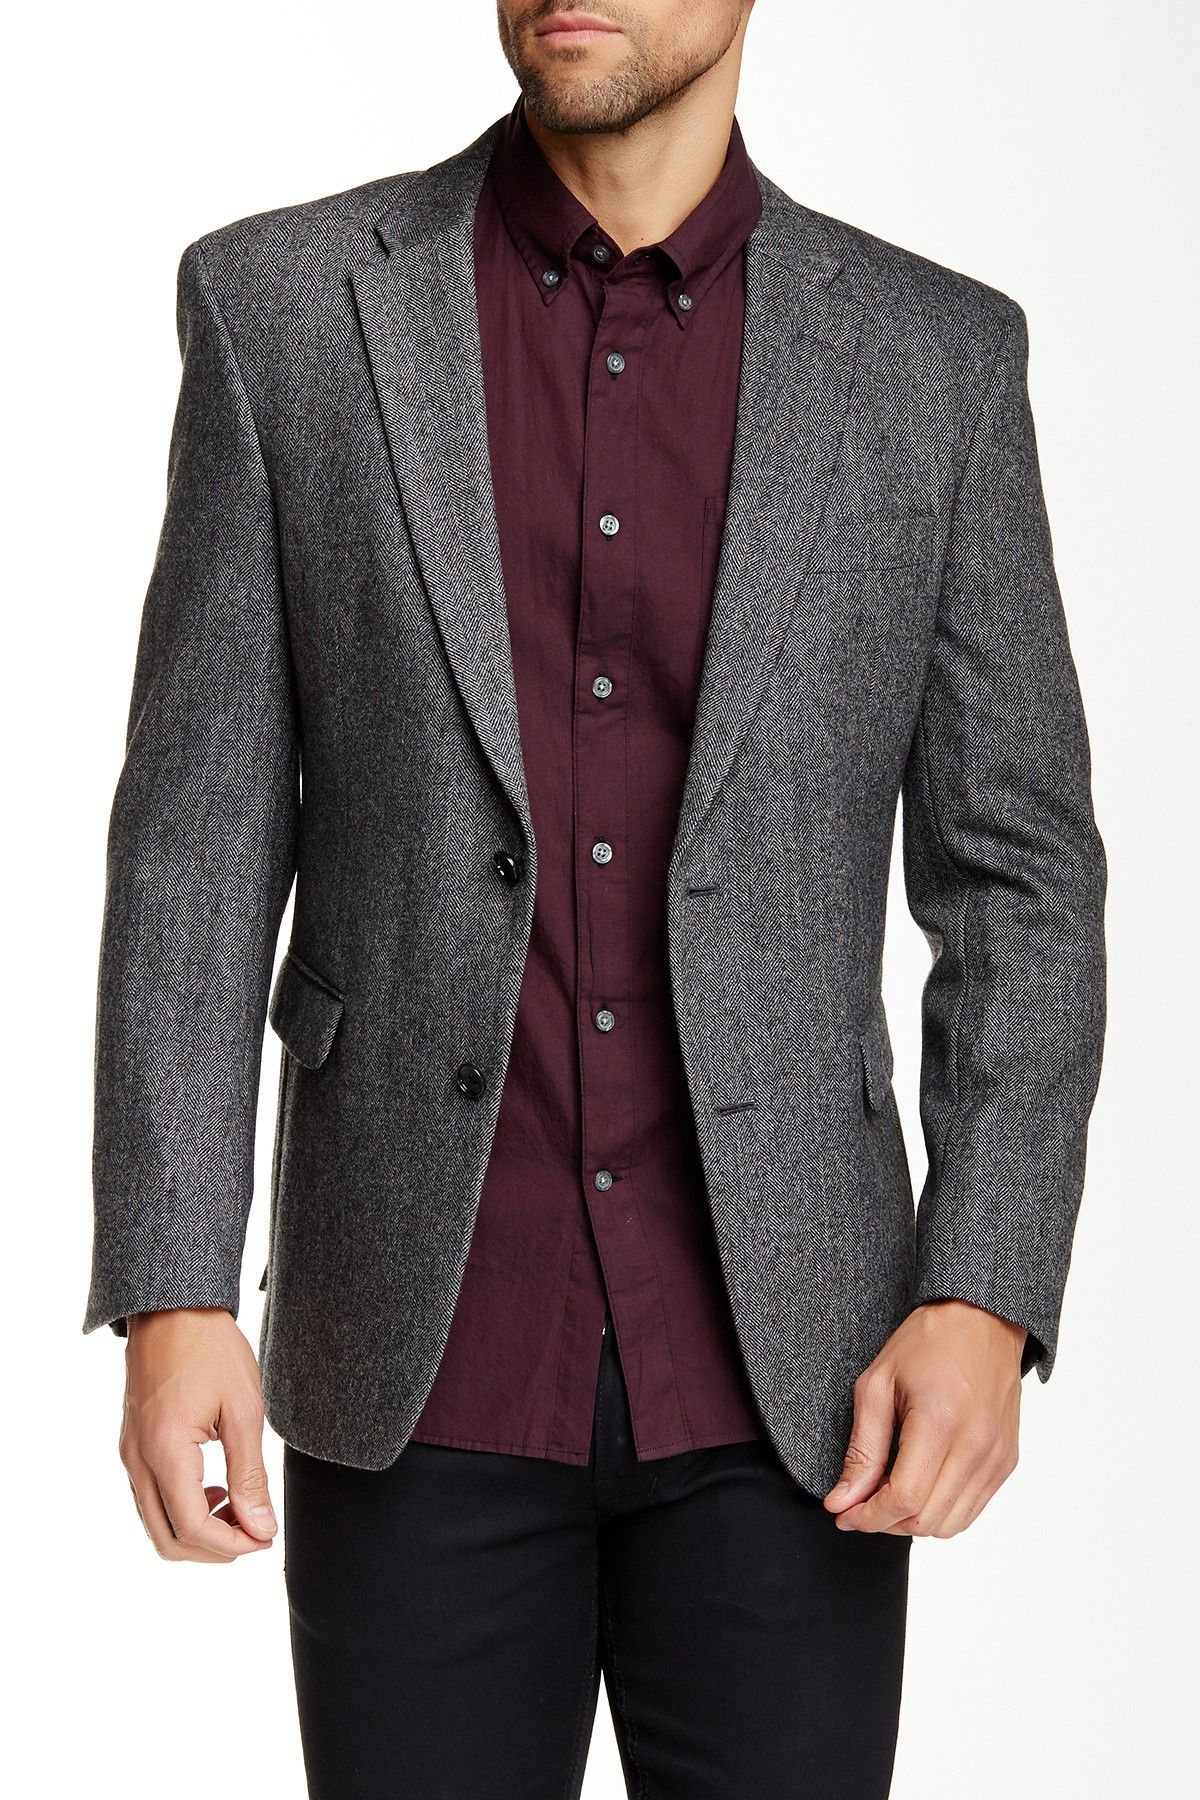 Tommy Hilfiger | Ethan Two Button Notch Lapel Herringbone Sportcoat | Nordstrom Rack